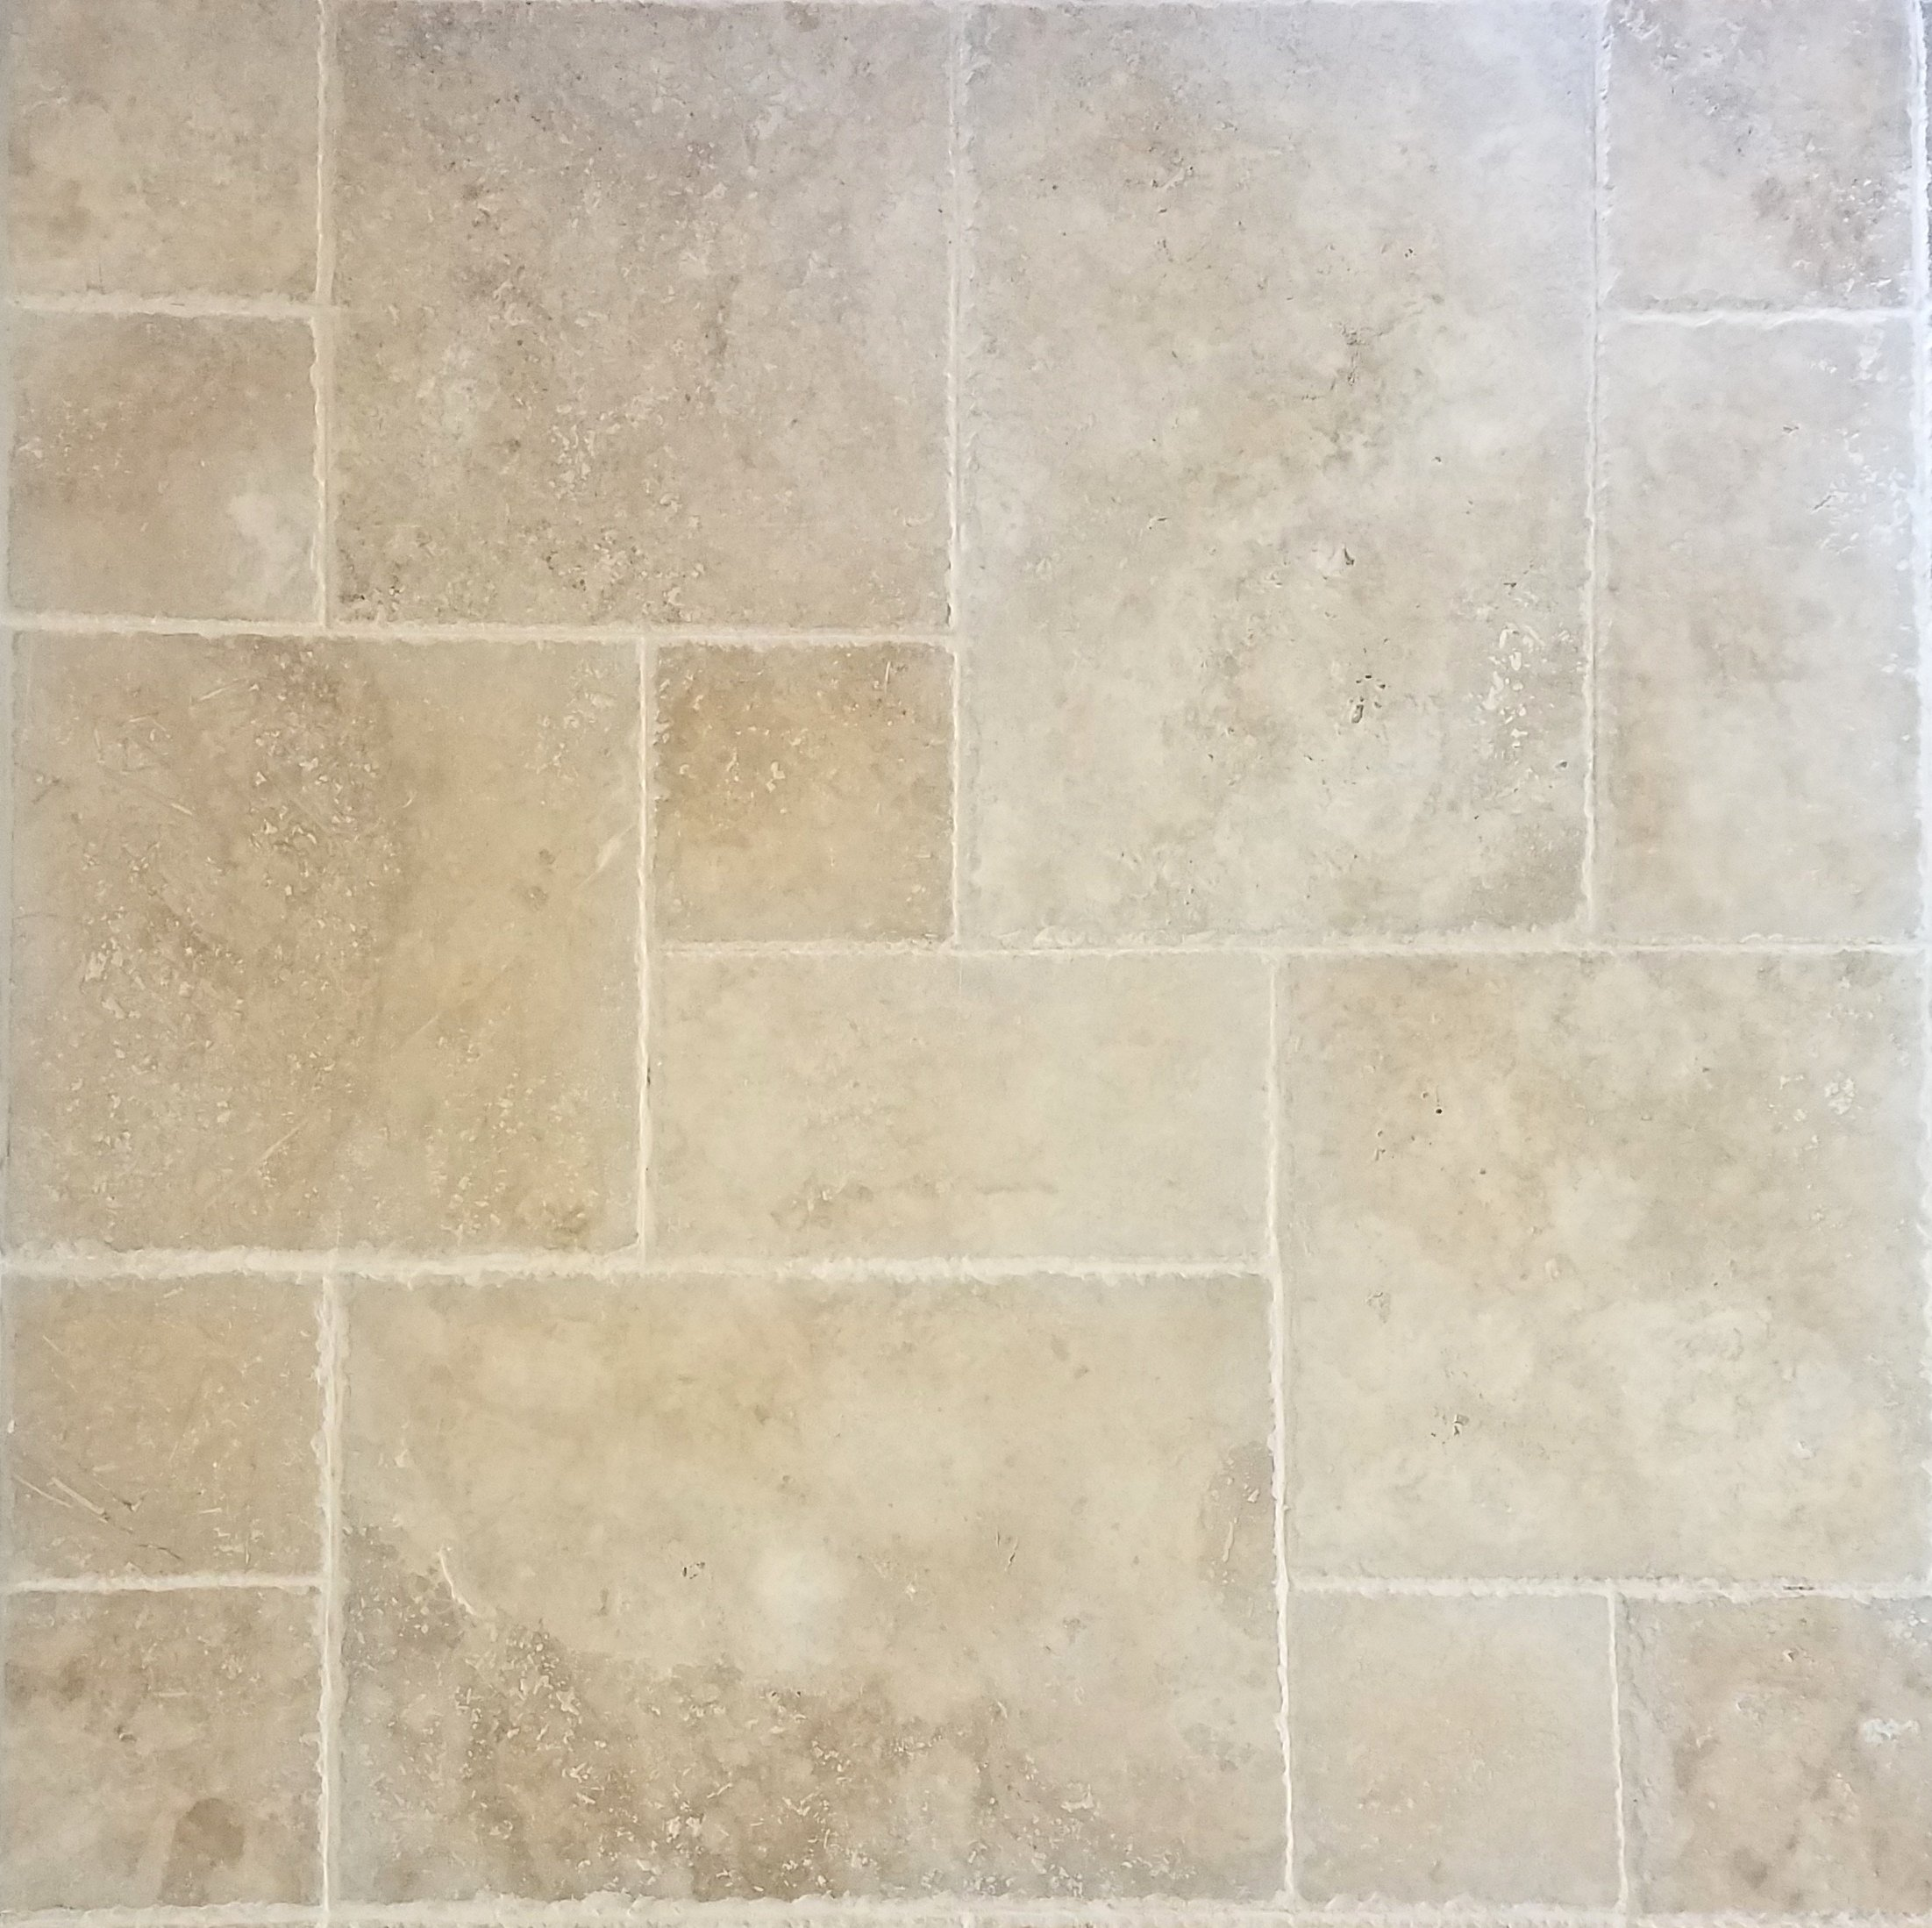 200 SQ.FT. Travertine Tile Versailles Pattern (Walnut) Pool & Patio, Backyard... Brushed and Chiseled Natural Stone for Outdoors & Indoors